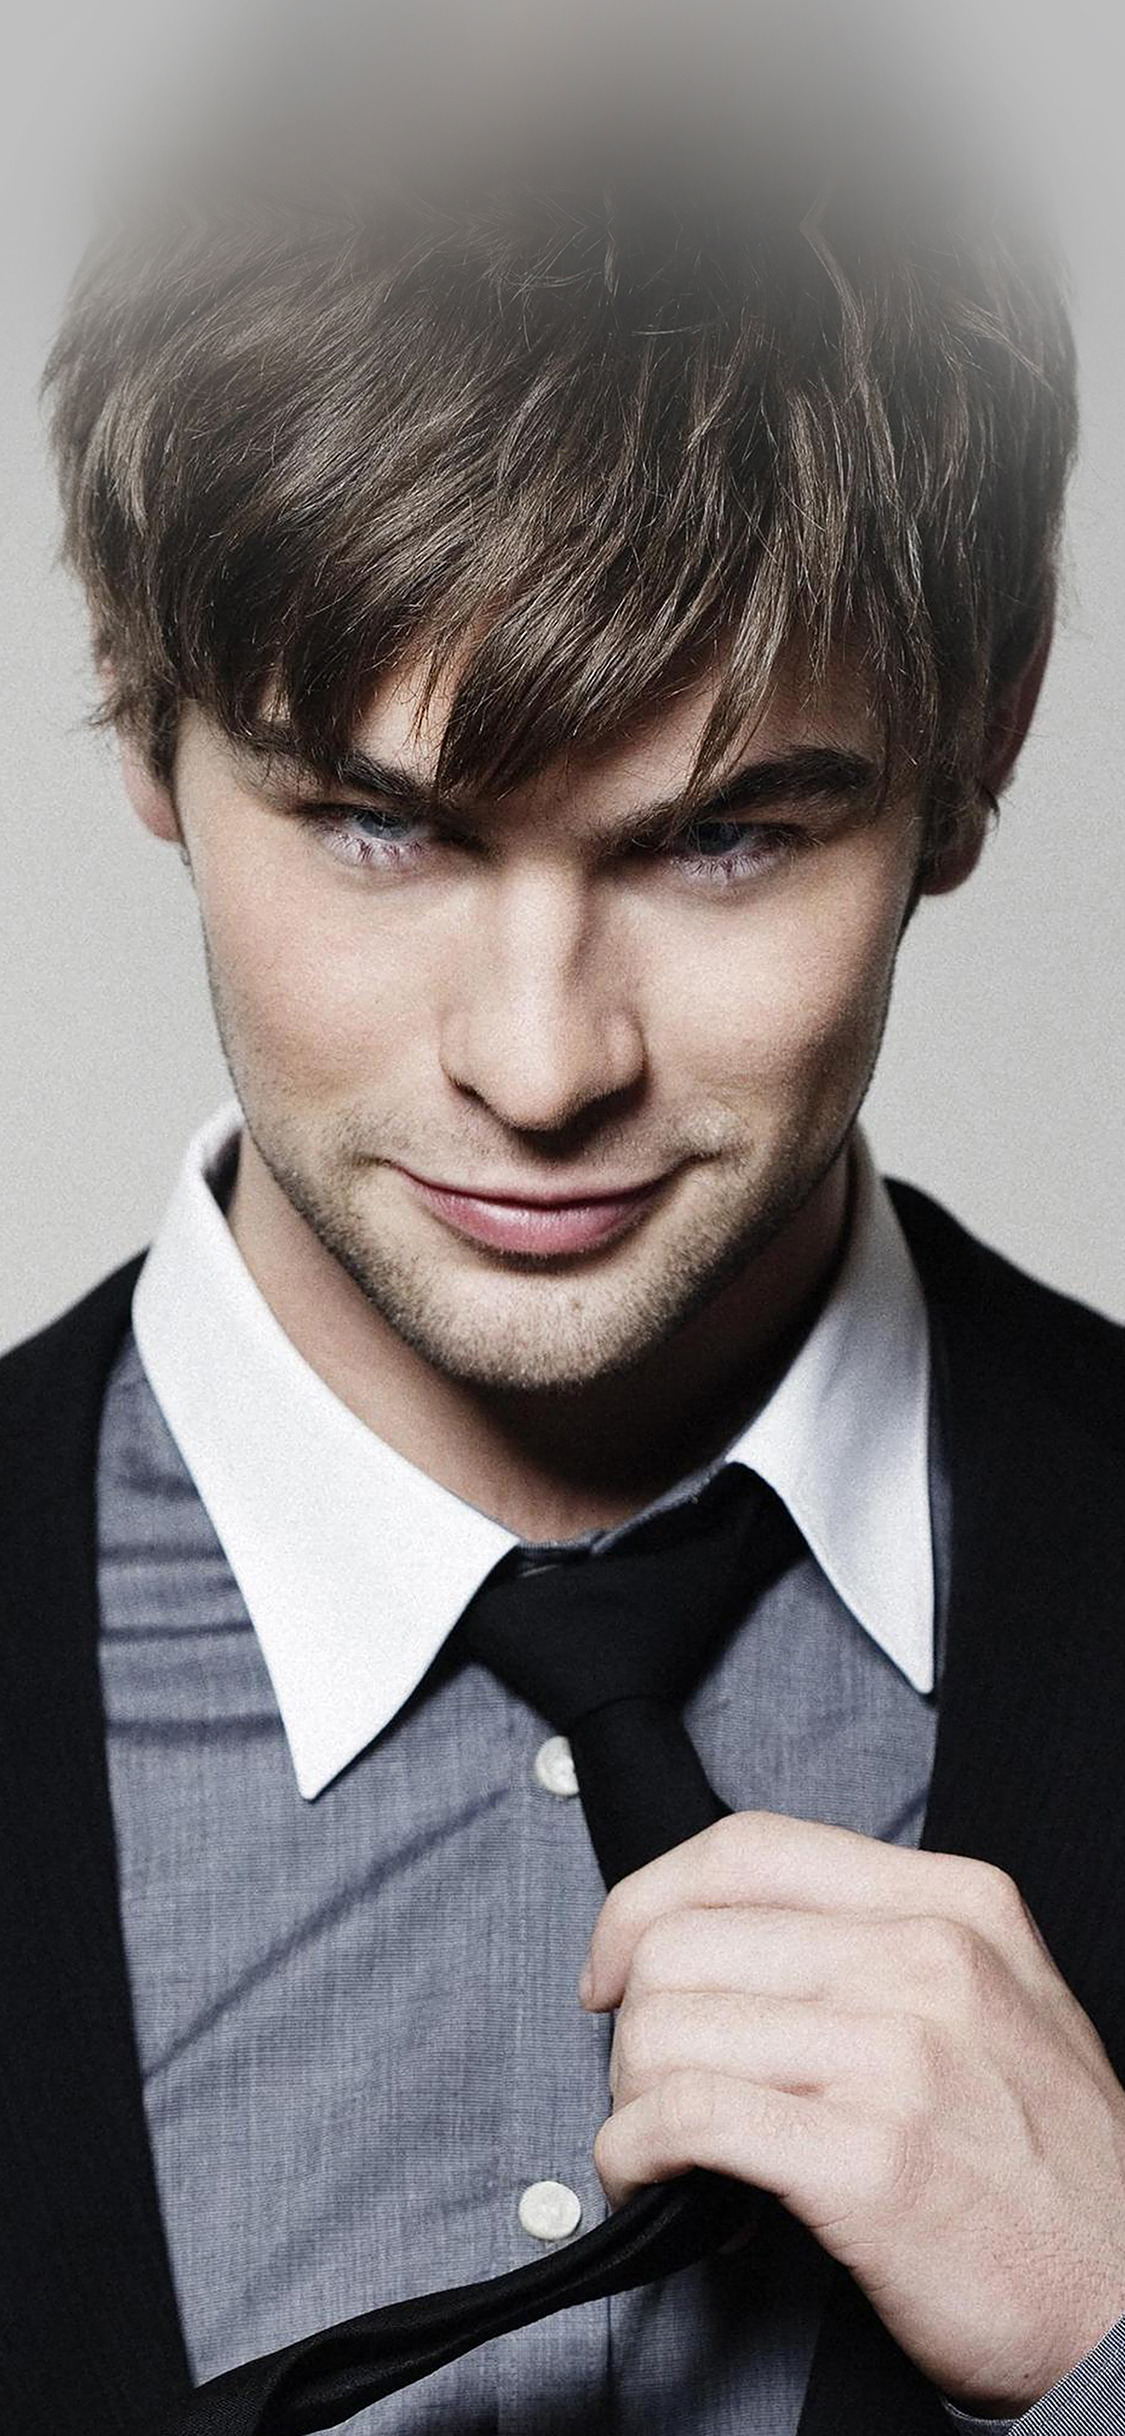 iPhoneXpapers.com-Apple-iPhone-wallpaper-hd88-crawford-chace-handsome-actor-celebrity